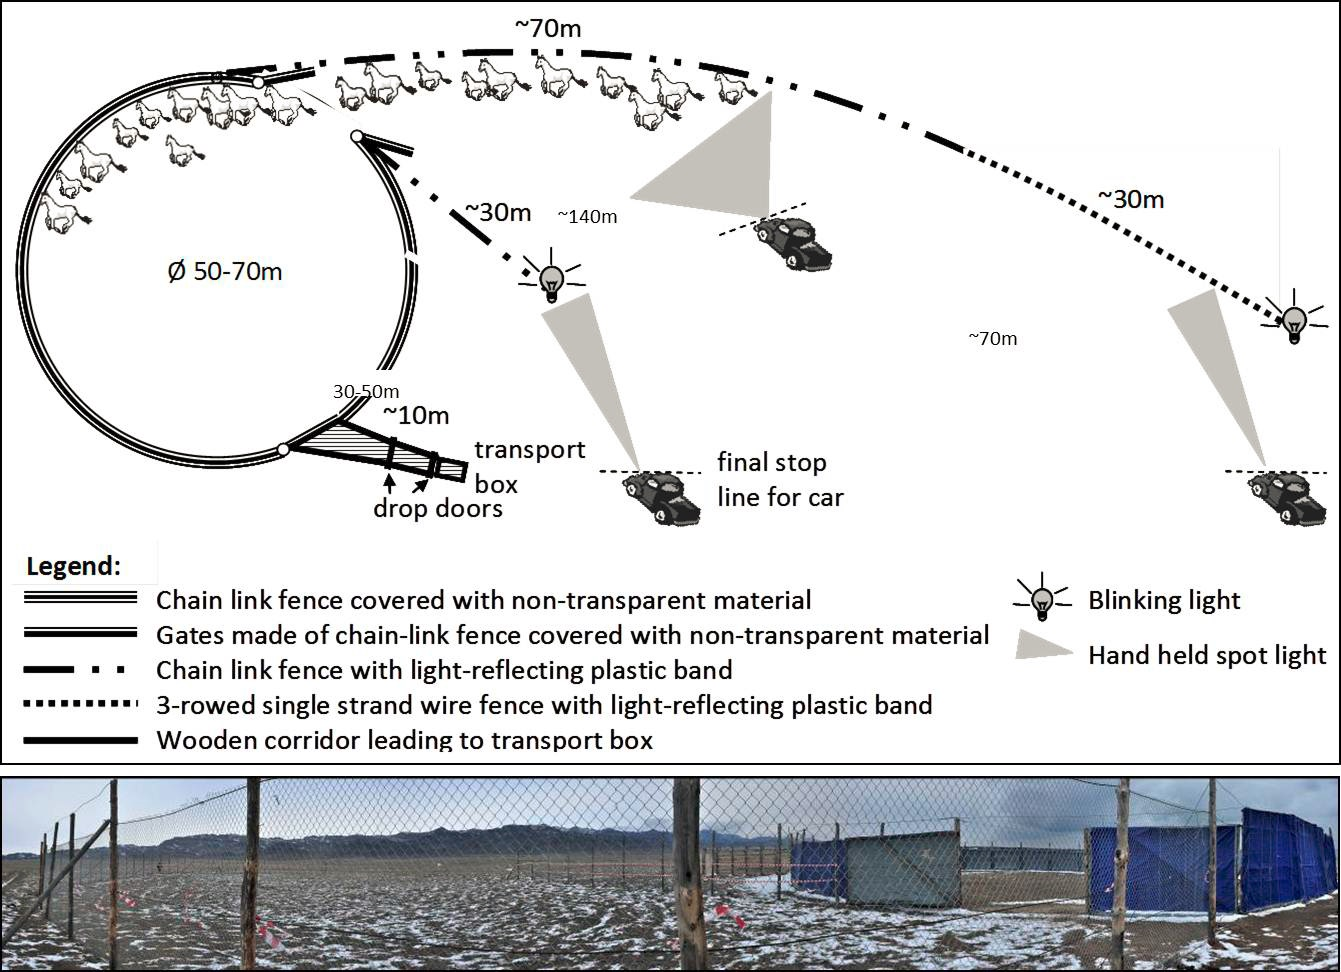 A schematic diagram showing the capture corral design. Credit: NINA